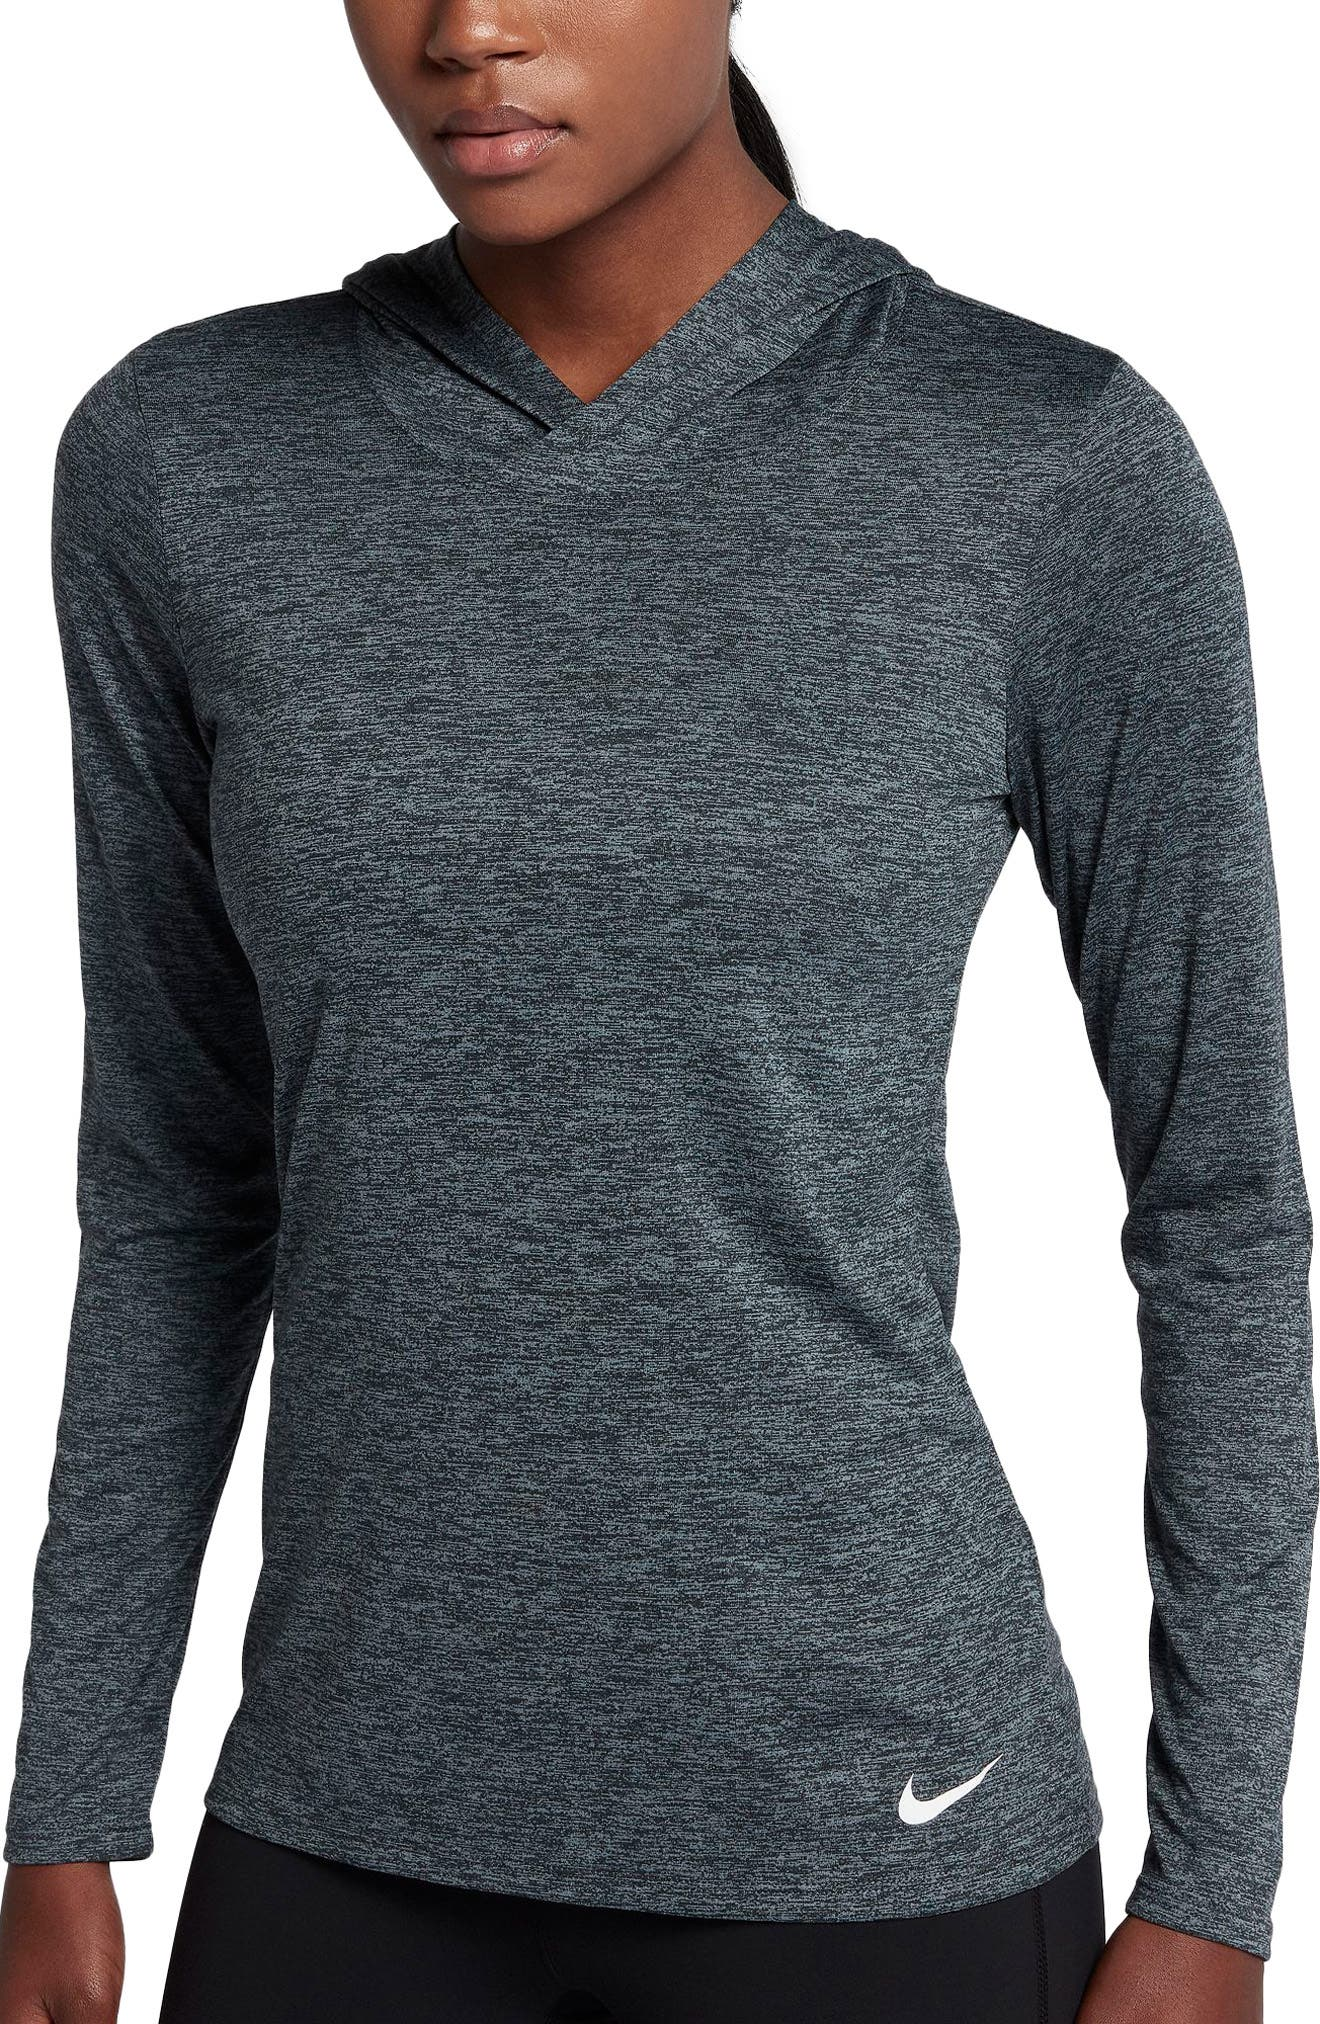 Dry Legend Hooded Training Top,                             Main thumbnail 1, color,                             010